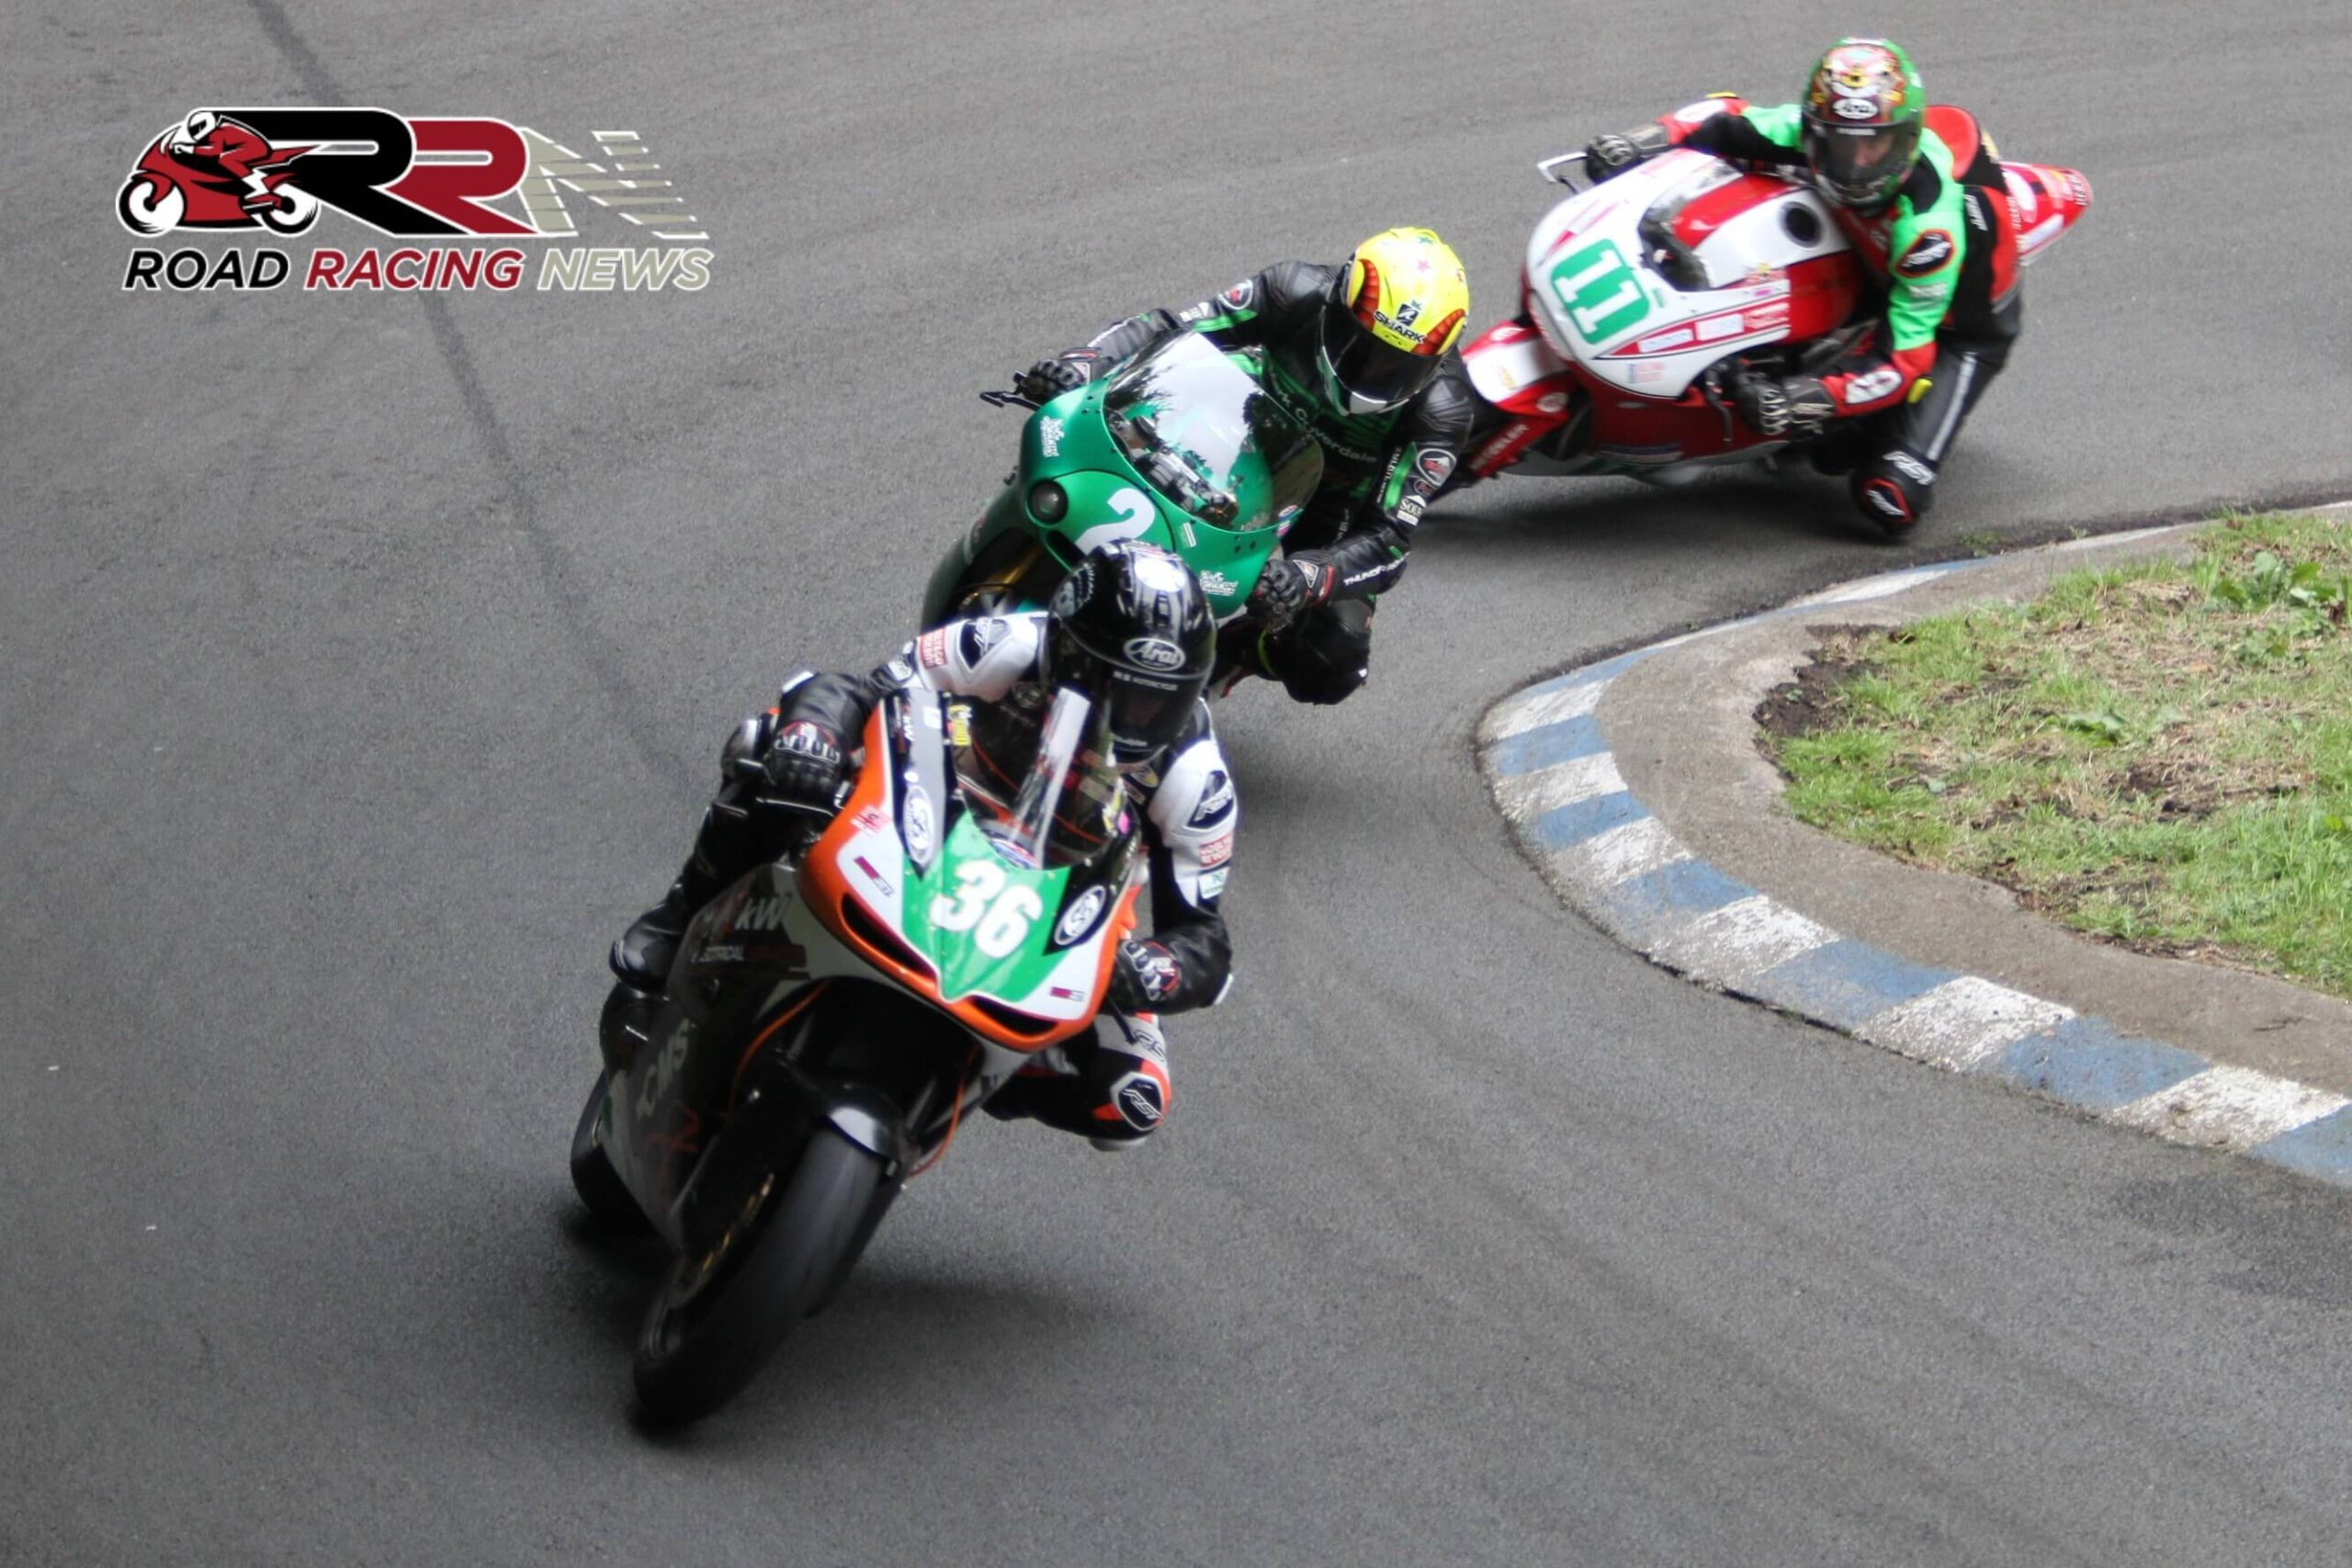 Barry Sheene Classic – Day 2 Results Wrap Up